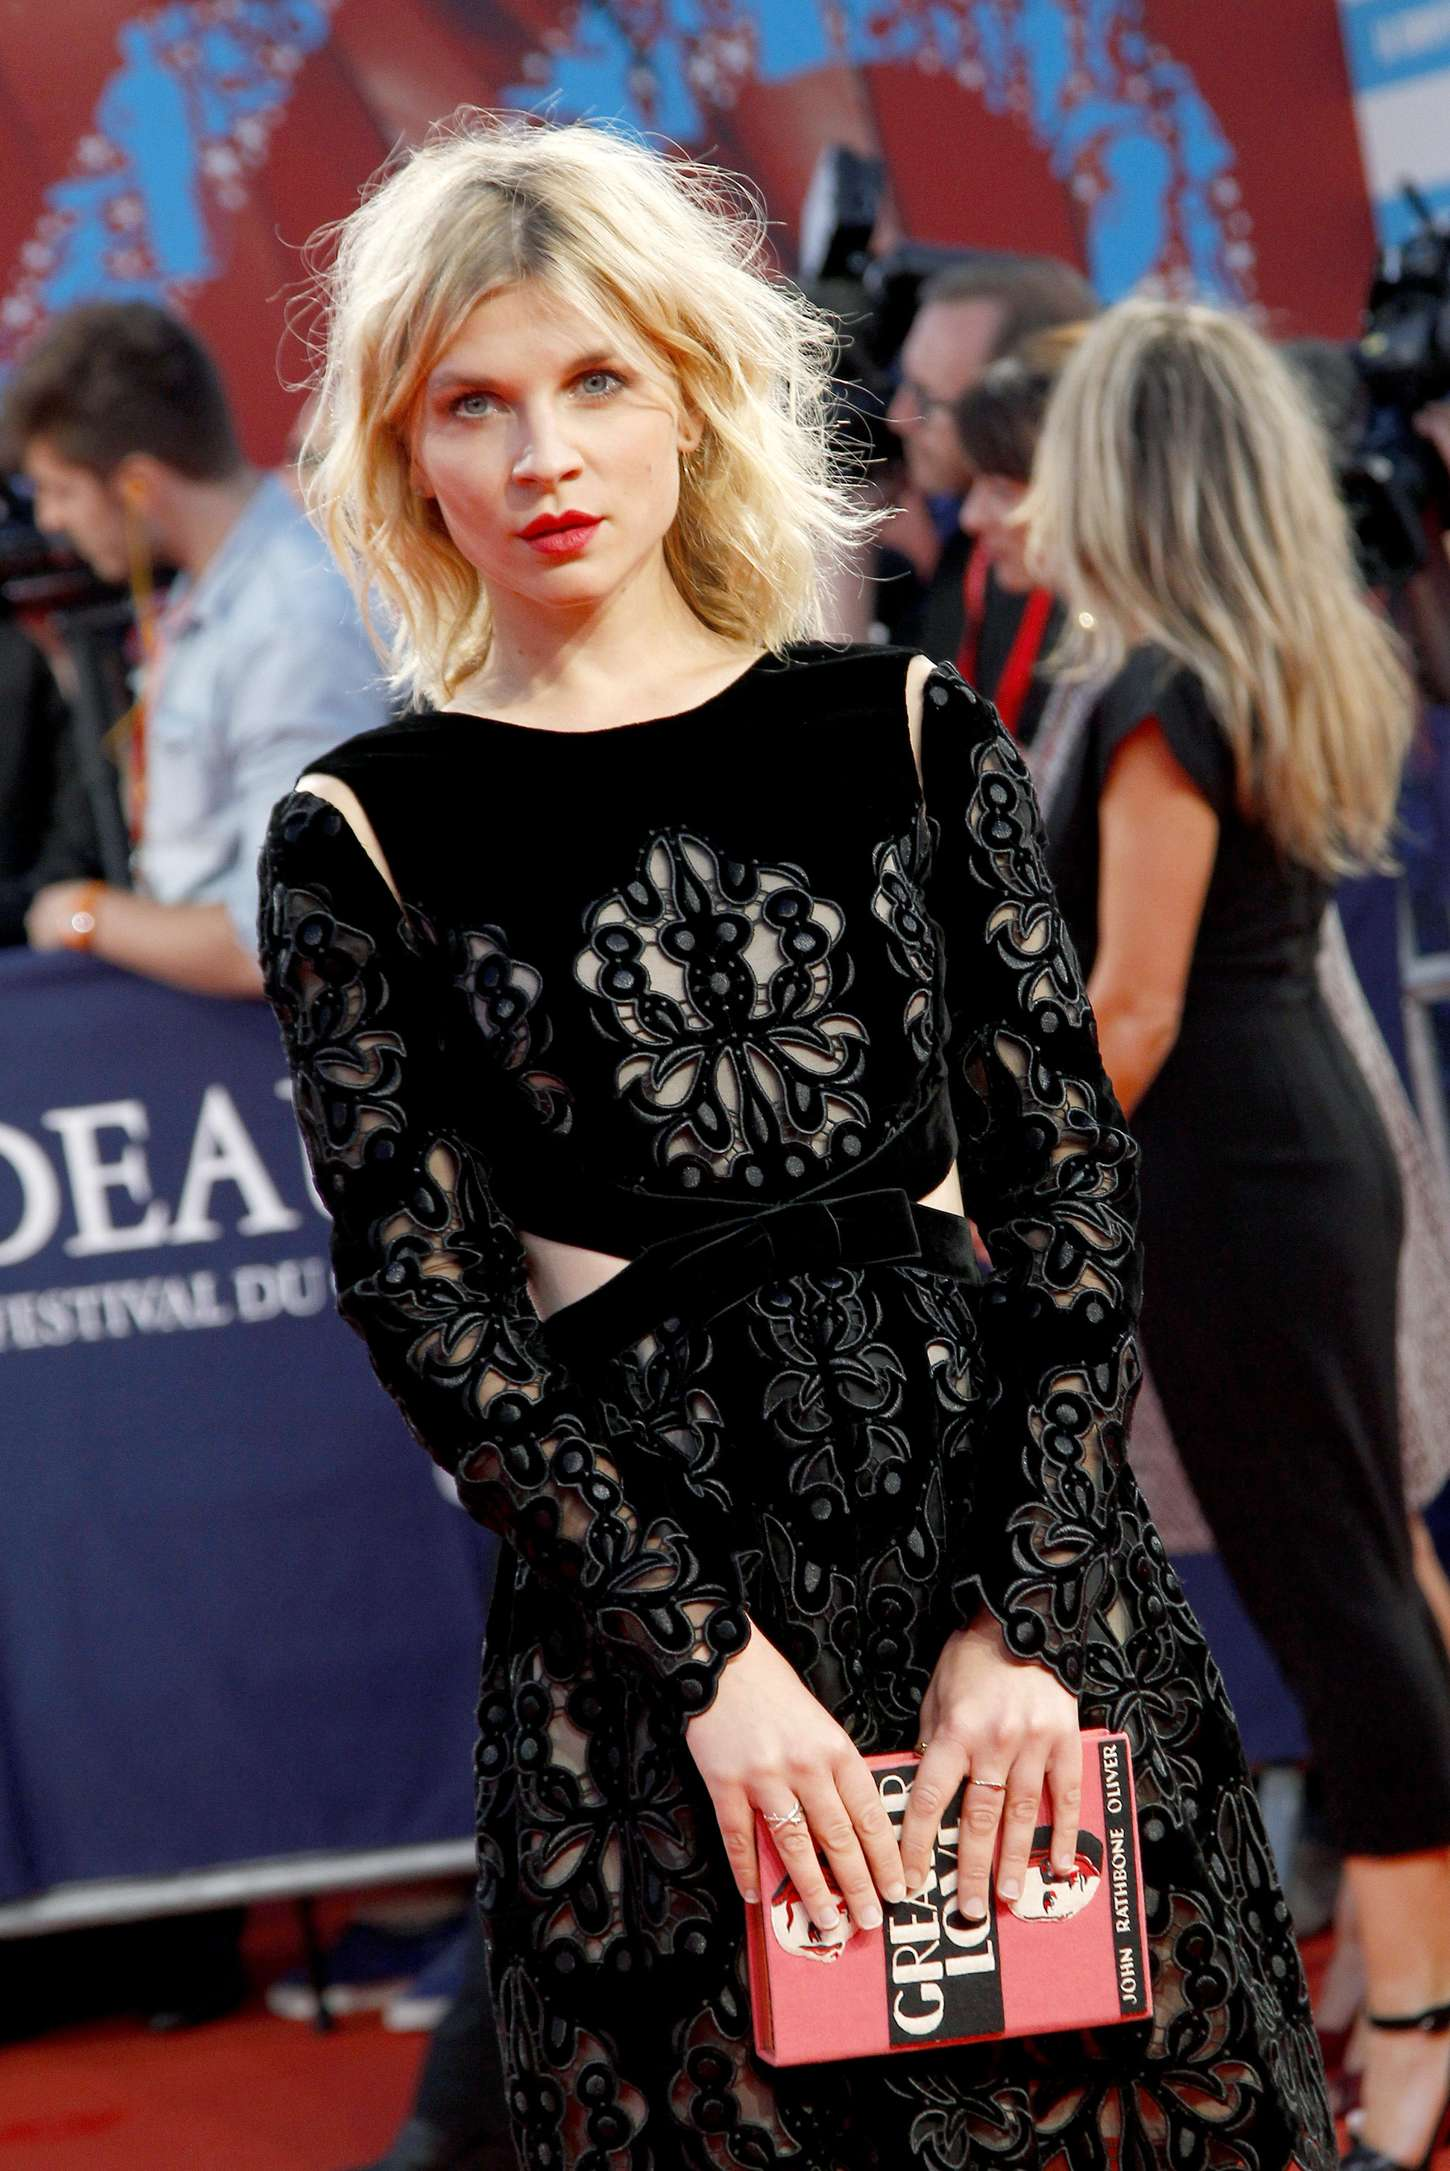 Clemence Poesy Get On Up Premiere in France